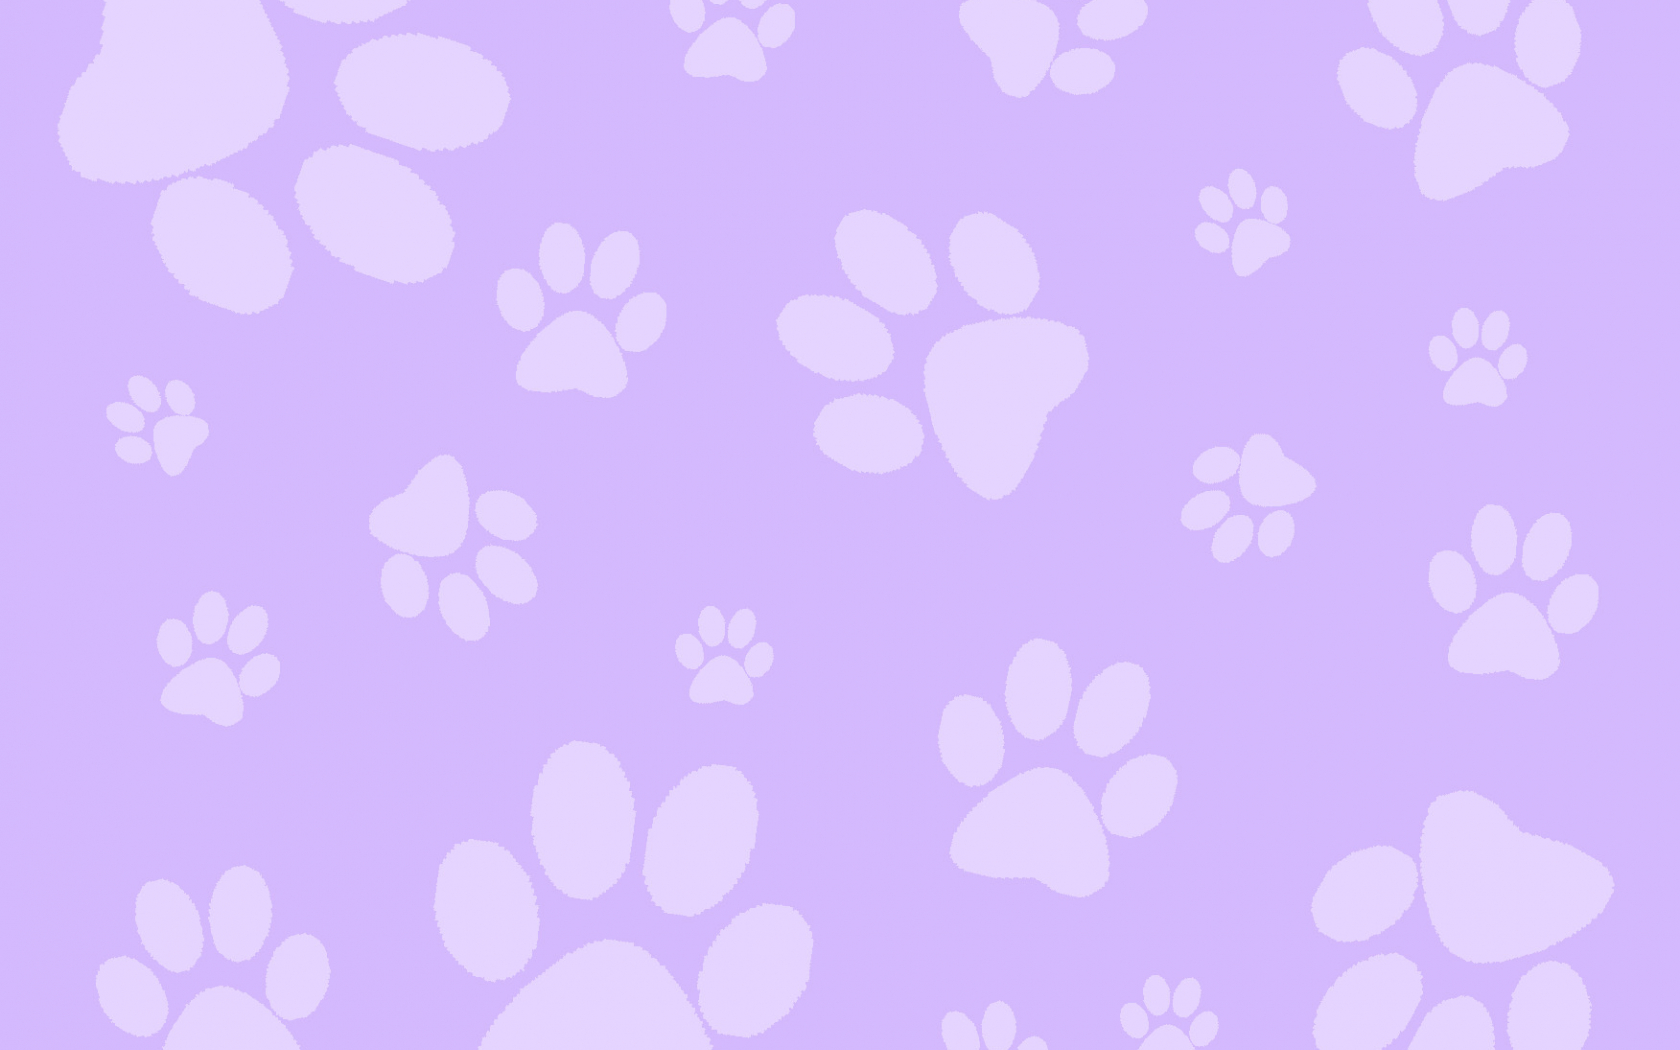 Free Download Paw Print Background Related Keywords Amp Suggestions Paw 1752x1378 For Your Desktop Mobile Tablet Explore 67 Paw Print Wallpaper Dog Paw Print Wallpaper Border Paw Print Wallpaper